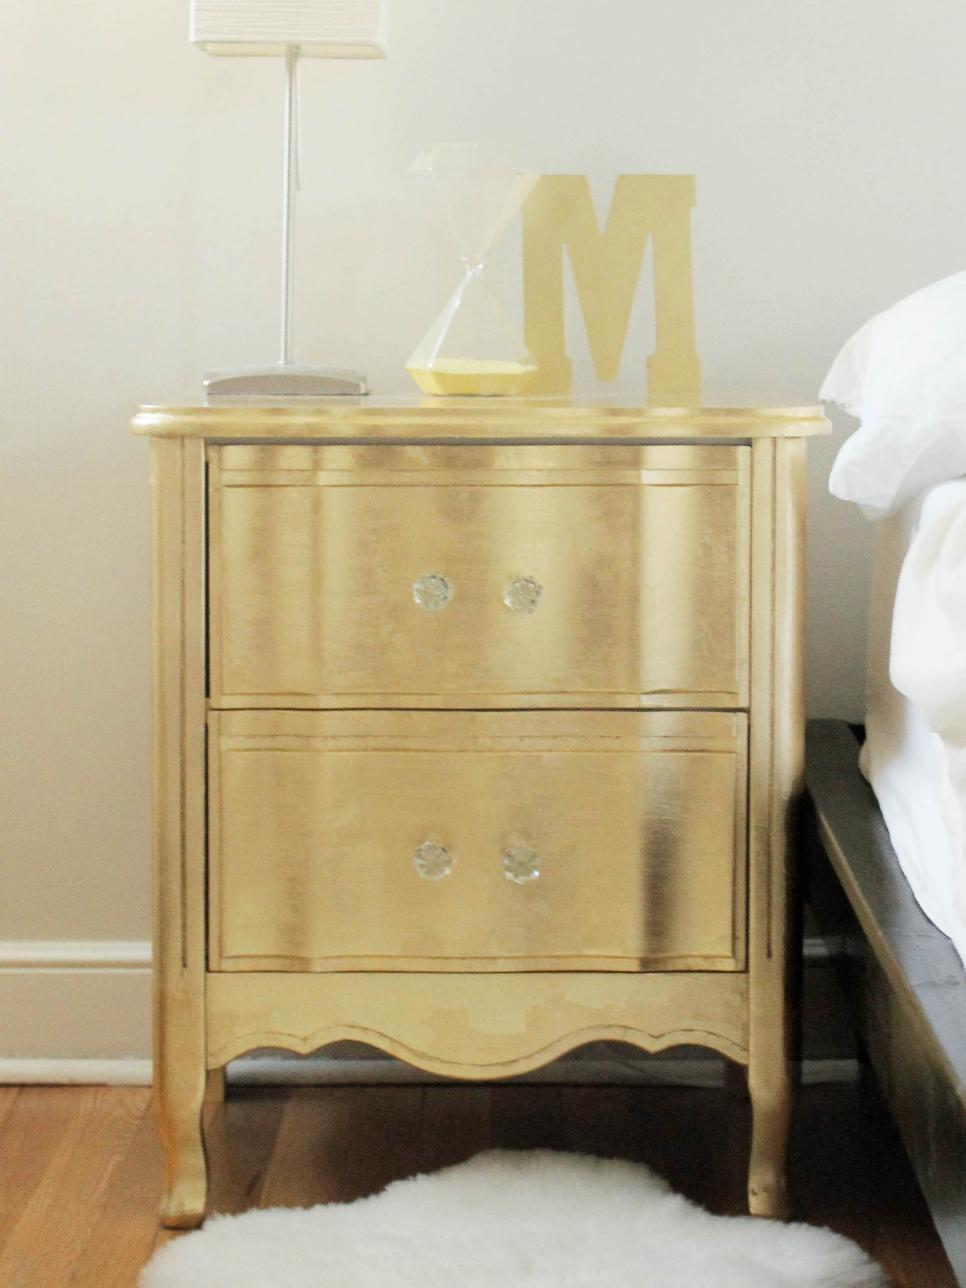 Ideas for Updating an Old Bedside Tables | DIY